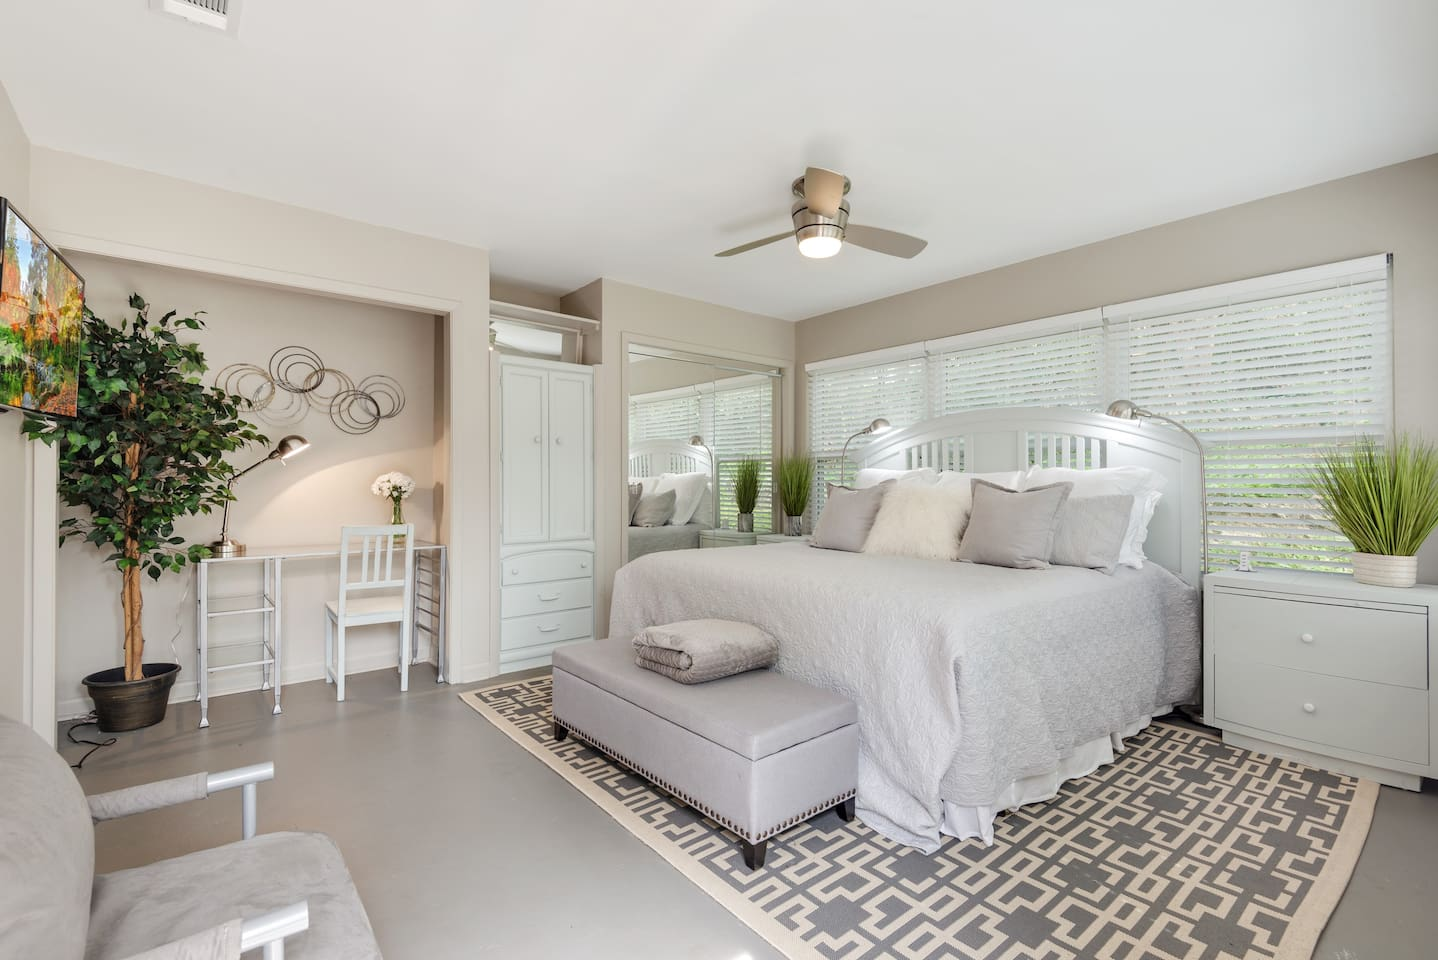 Chic and luxurious master bedroom that overlook an outdoor garden and patio.